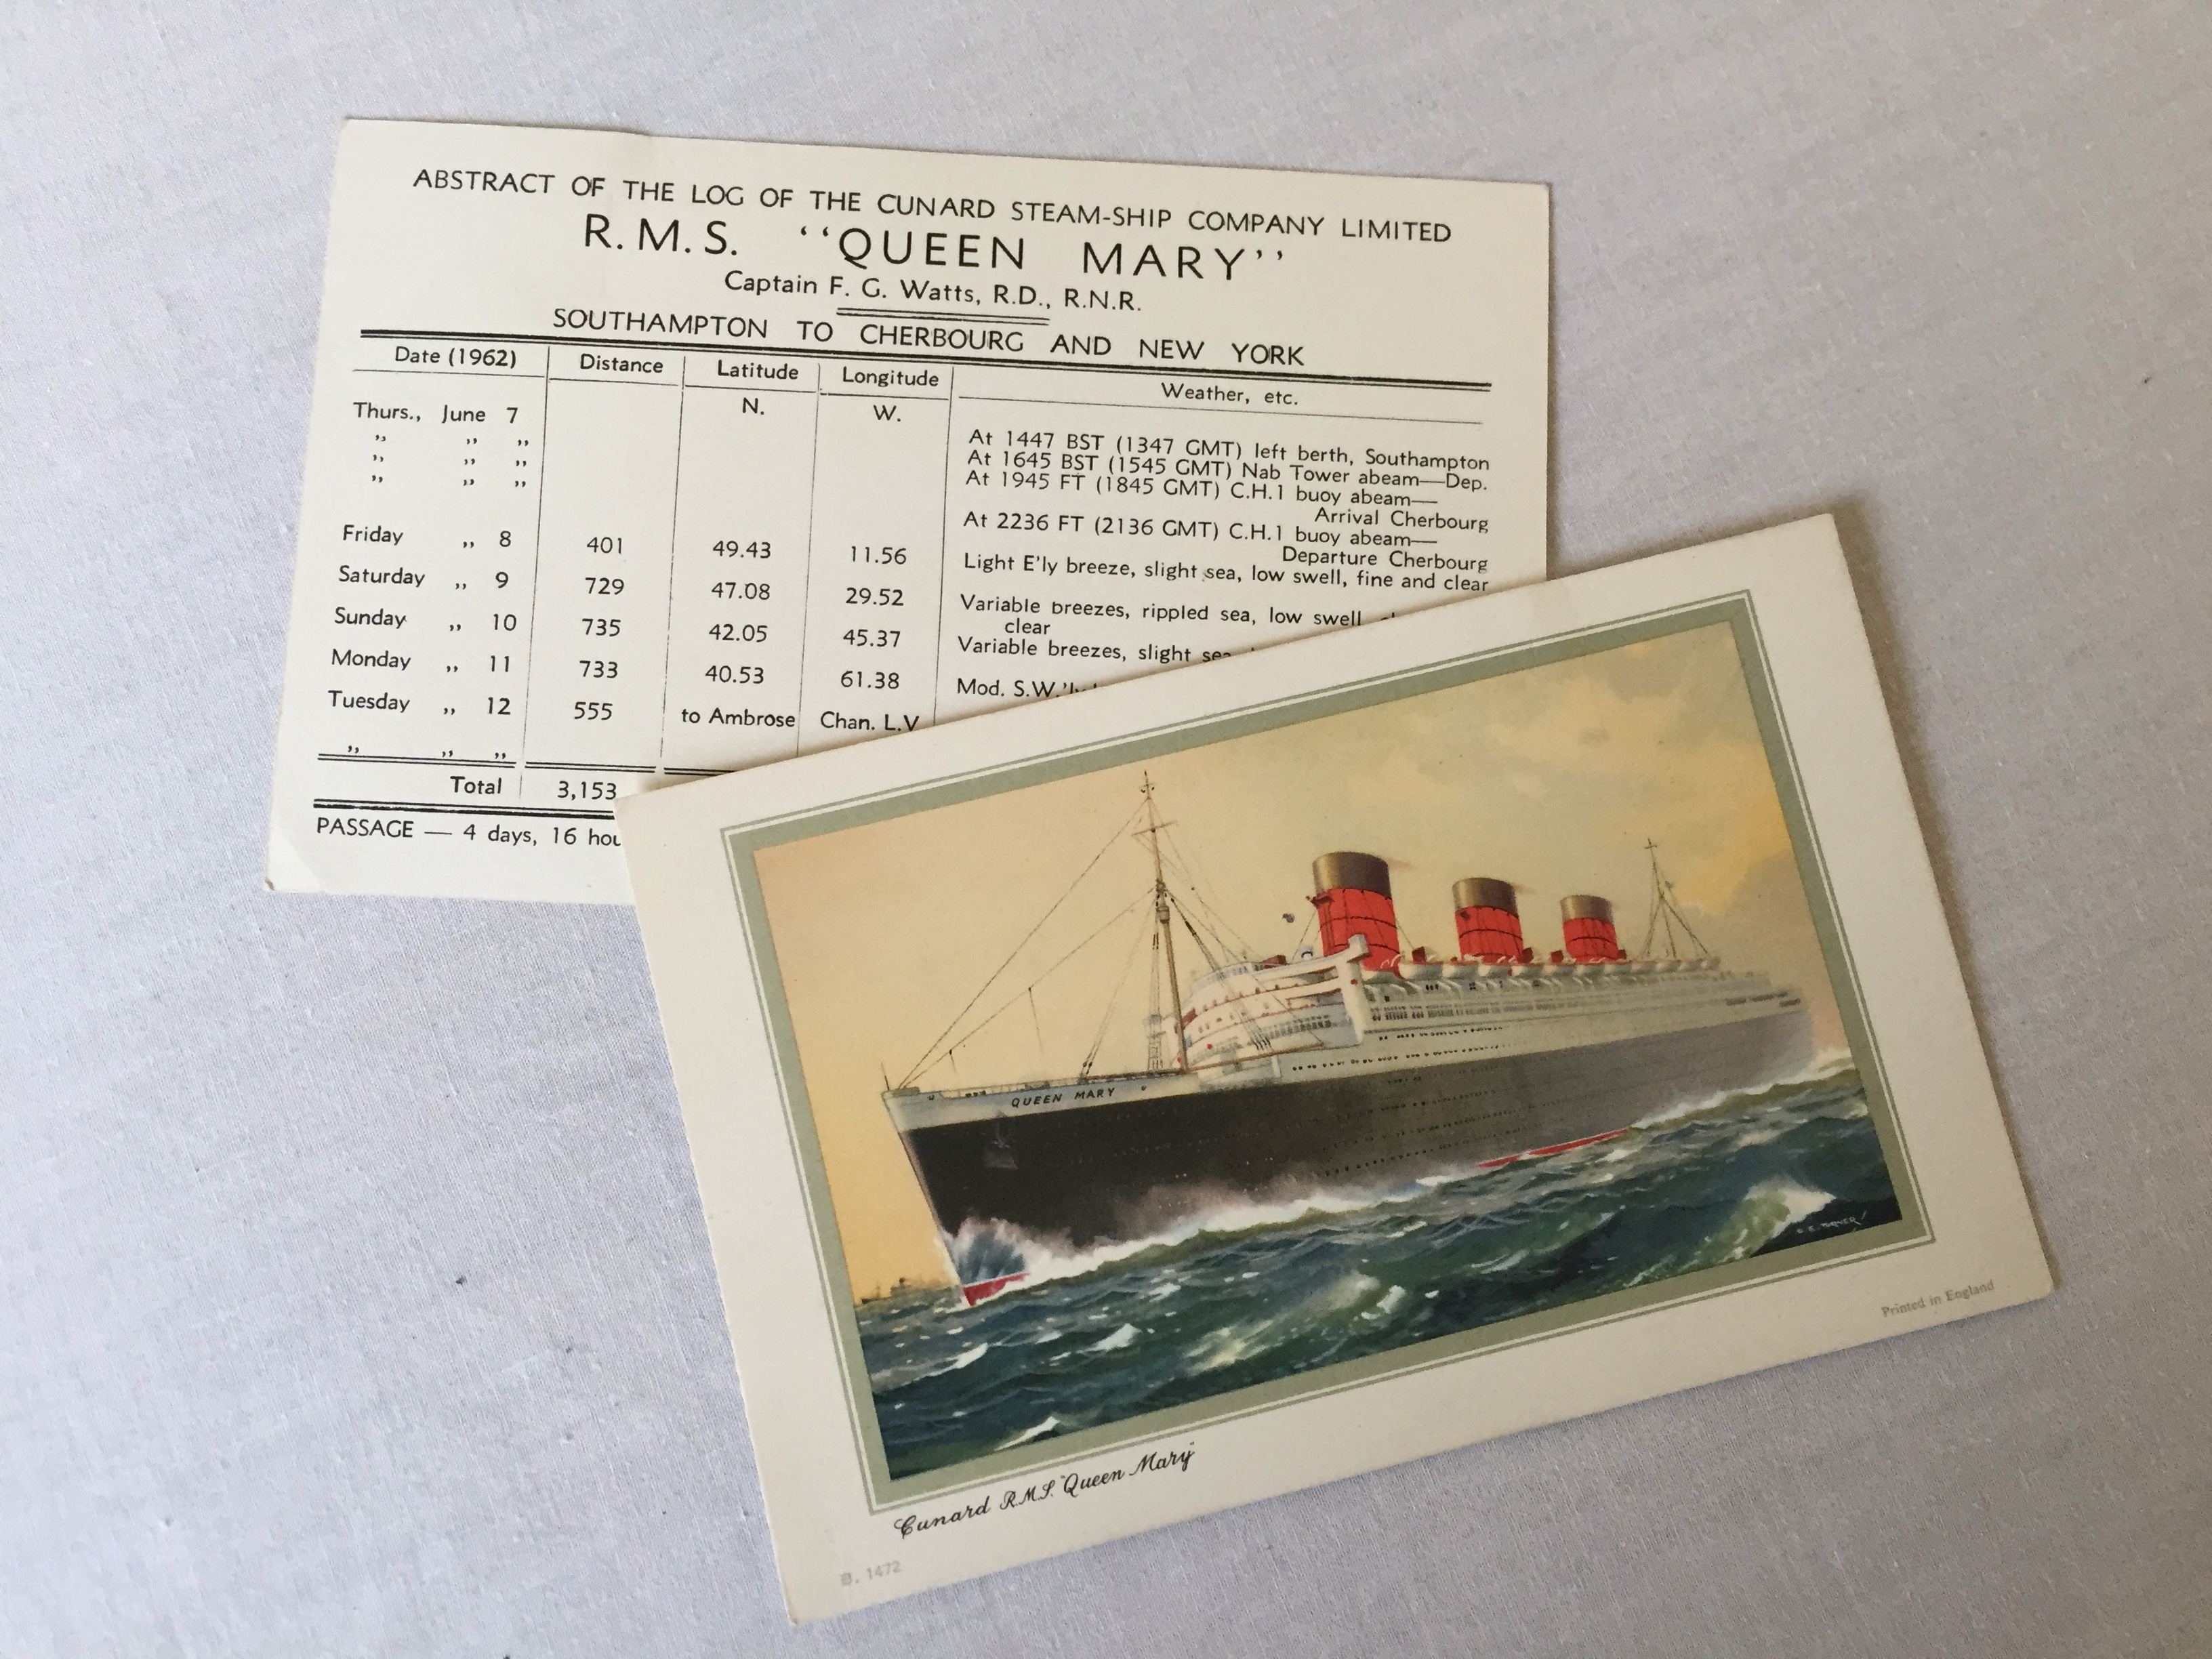 PAIR OF LOG CARDS FROM THE RMS QUEEN MARY DATED 1962